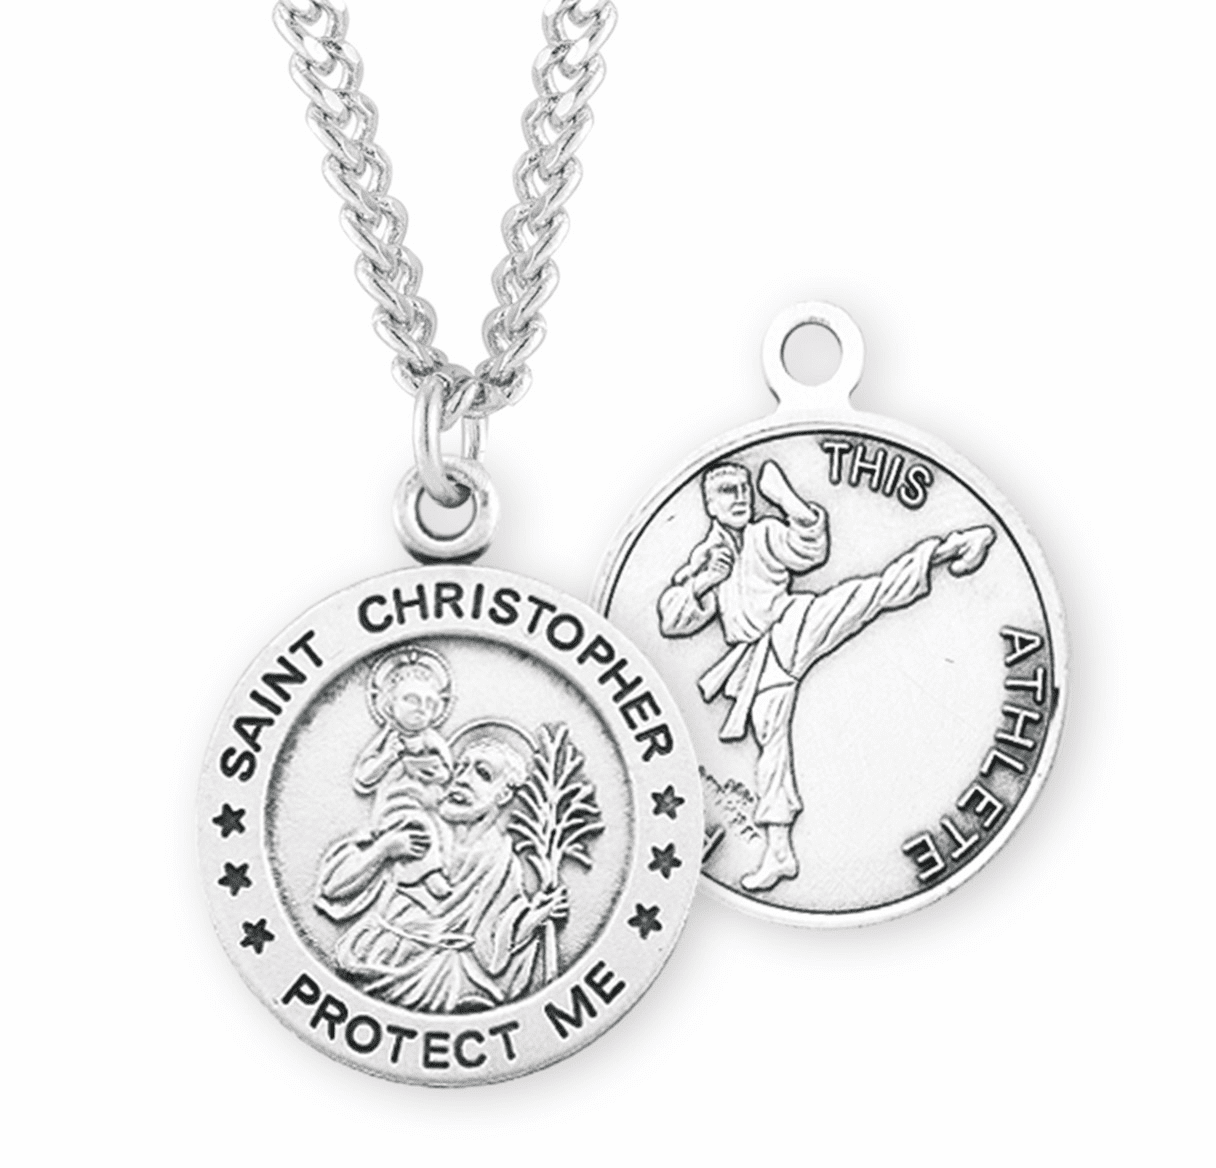 St Christopher Round Martial Arts Sports Saint Medal Necklace by HMH Religious